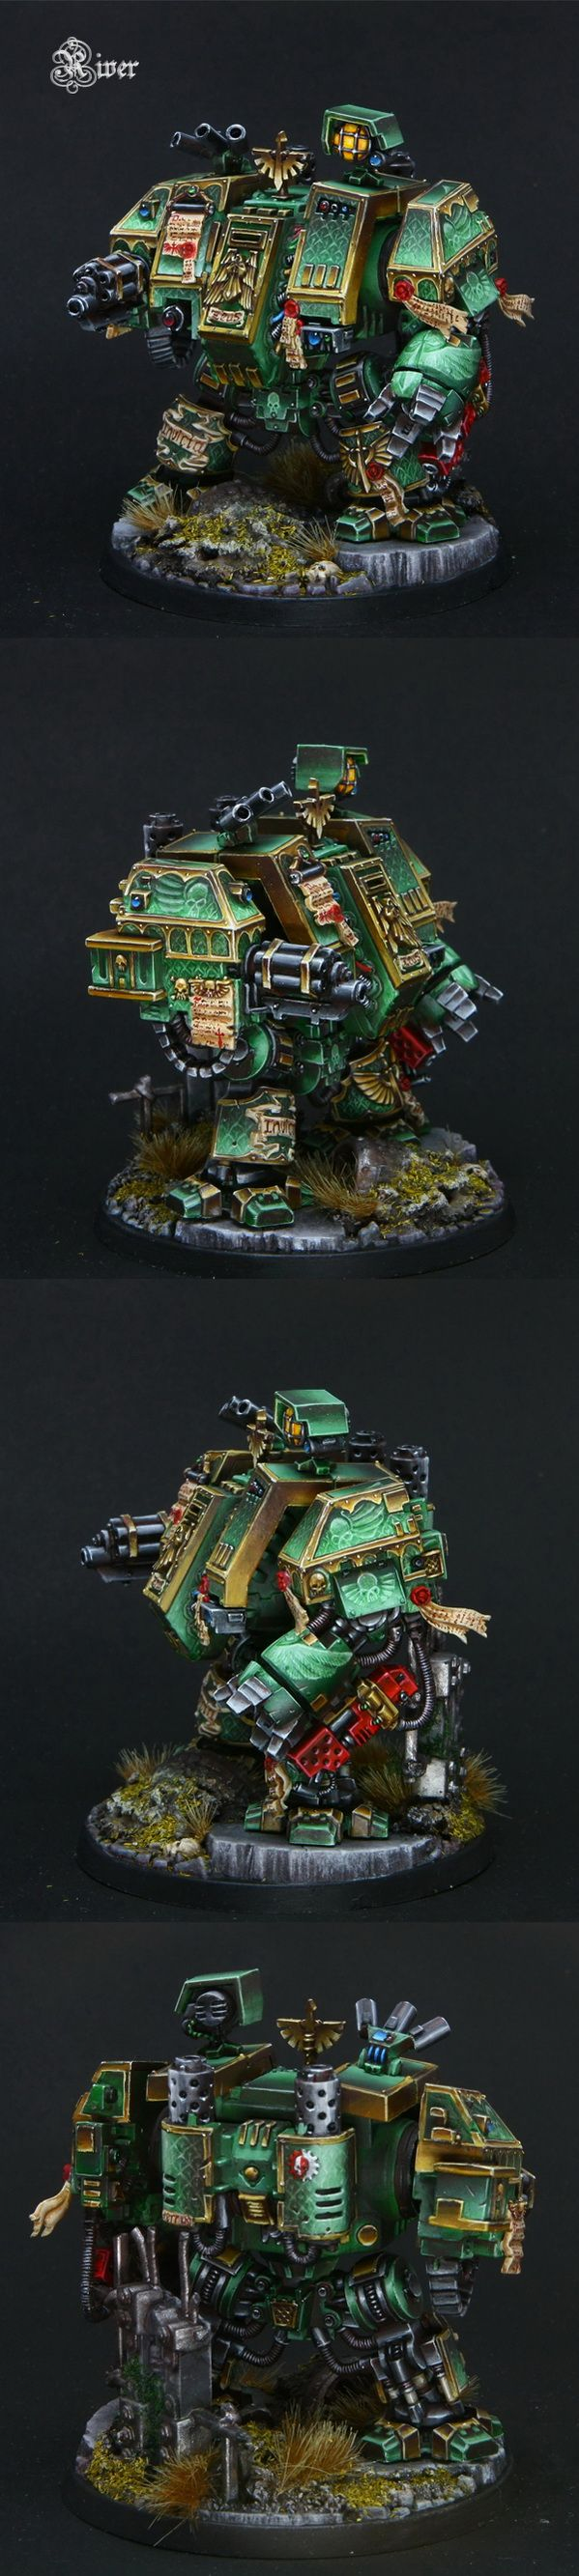 40k - Dark Angels Venerable Dreadnought well that is the most beautiful murder machine i have ever seen